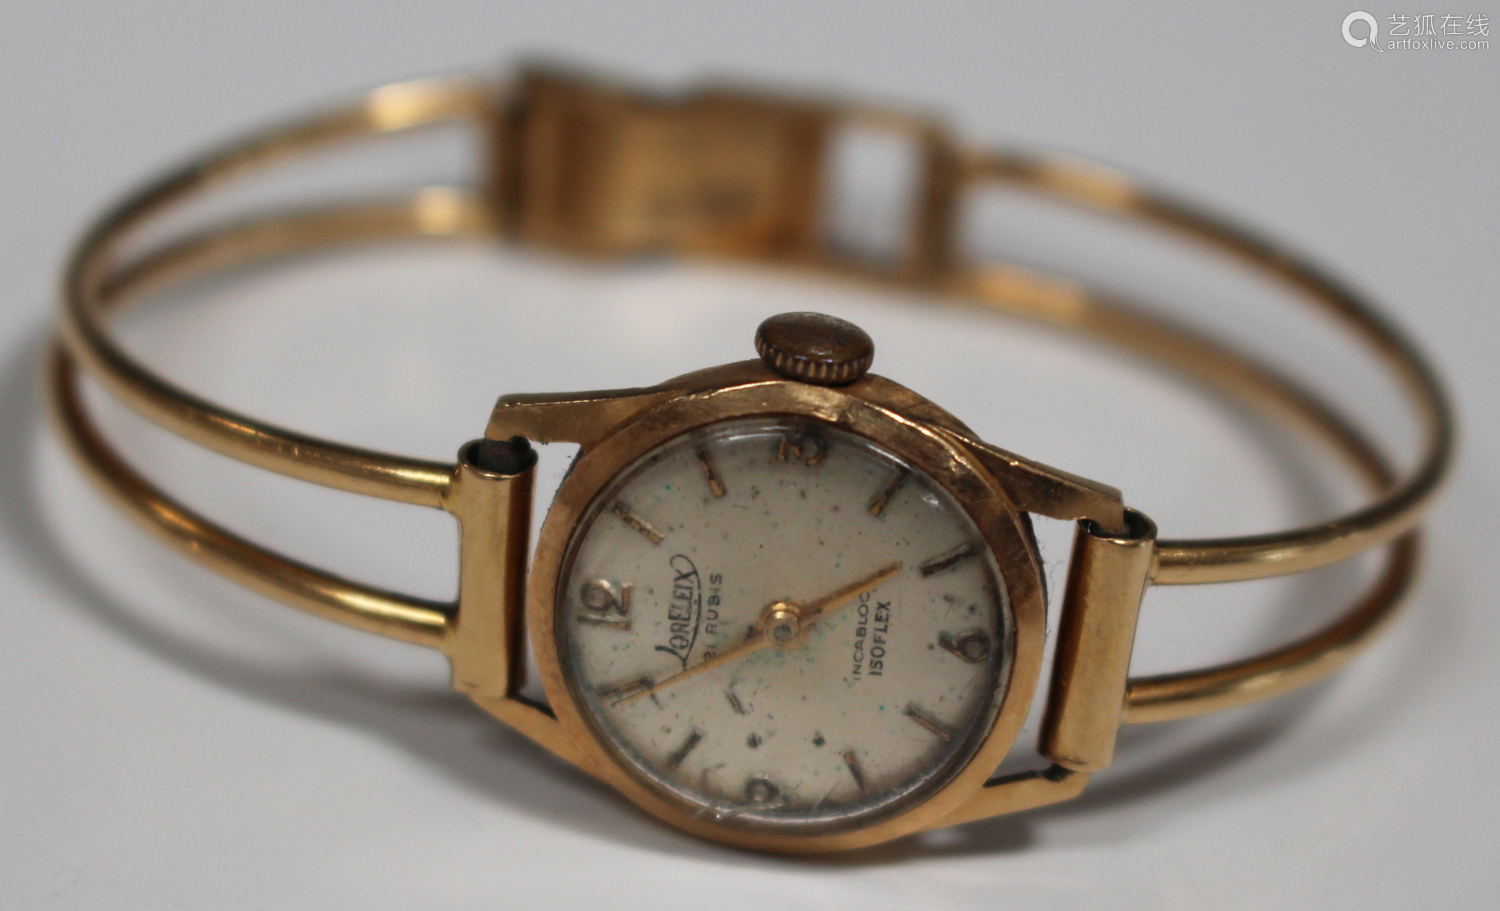 A Loreleix Isoflex gold cased lady's wristwatch, the case back detailed '18K 0,750', on a curved bar